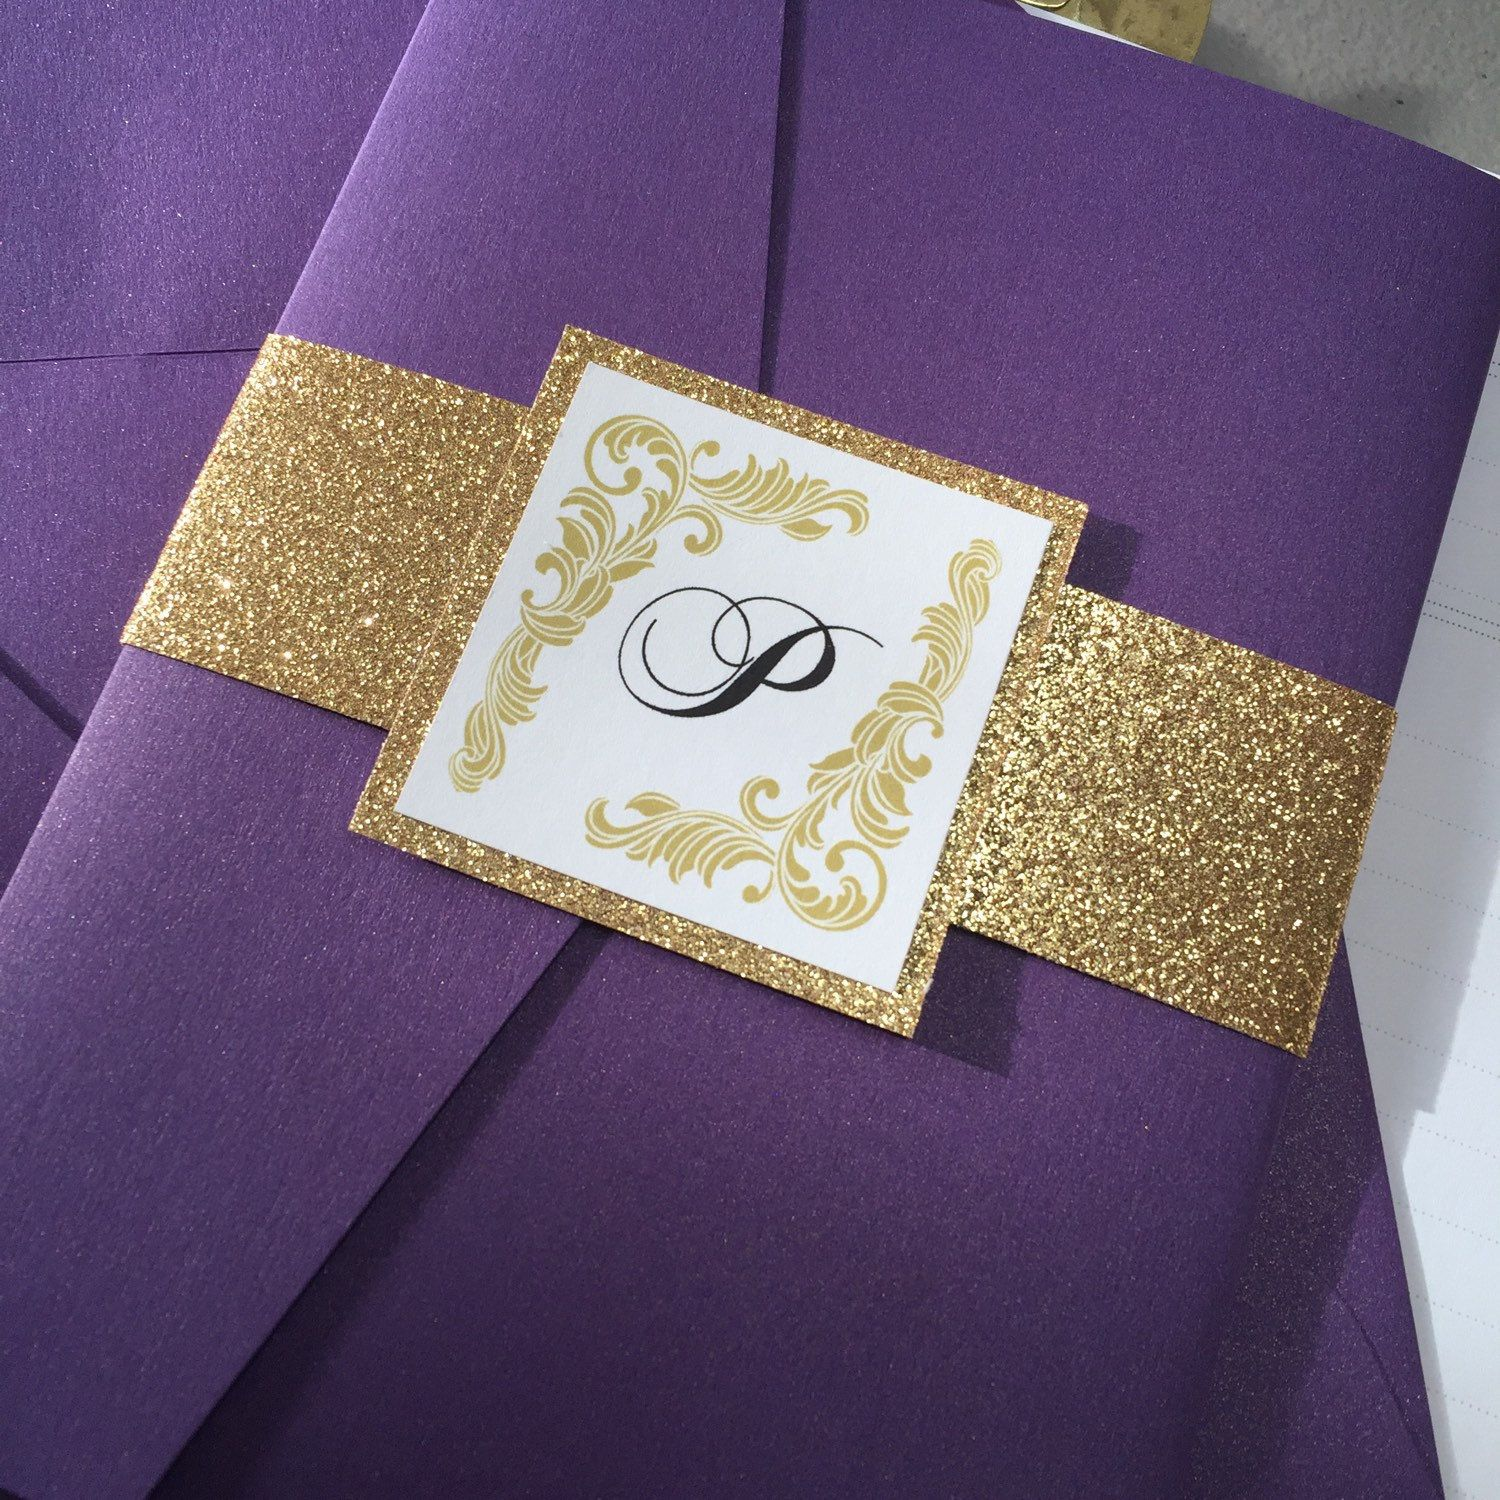 Formal Wedding Invitation Suite With Insert Cards Gold And Black